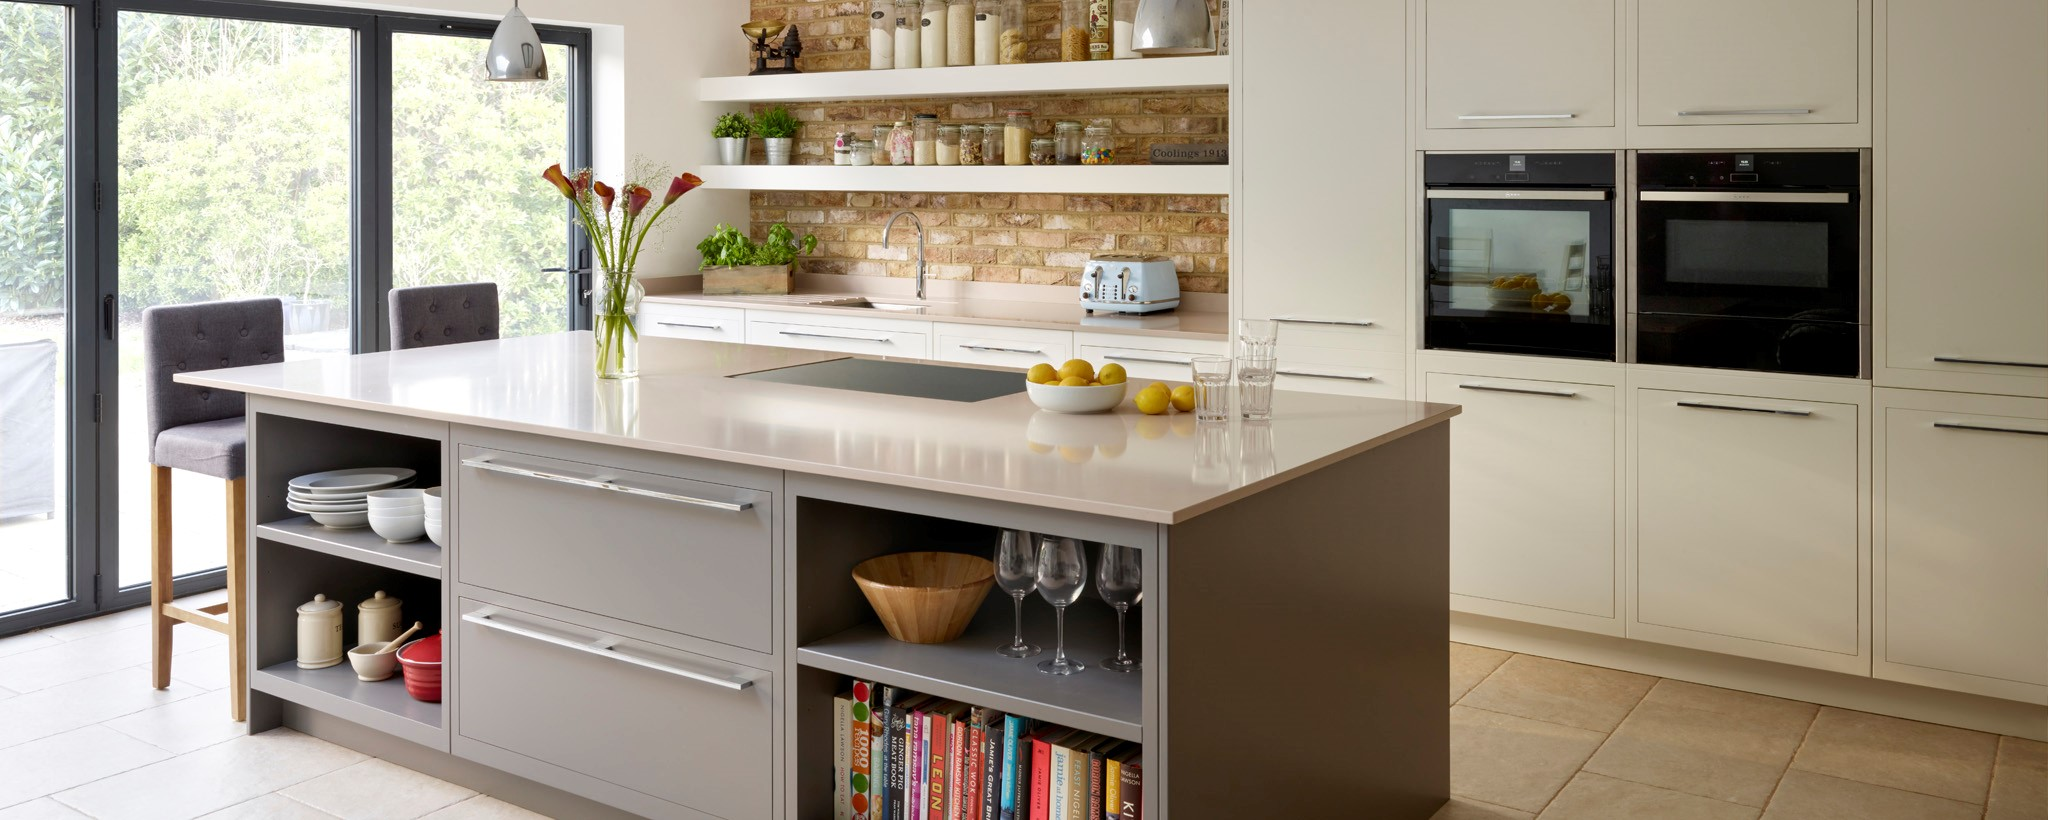 Kitchen Design And Planning Hove